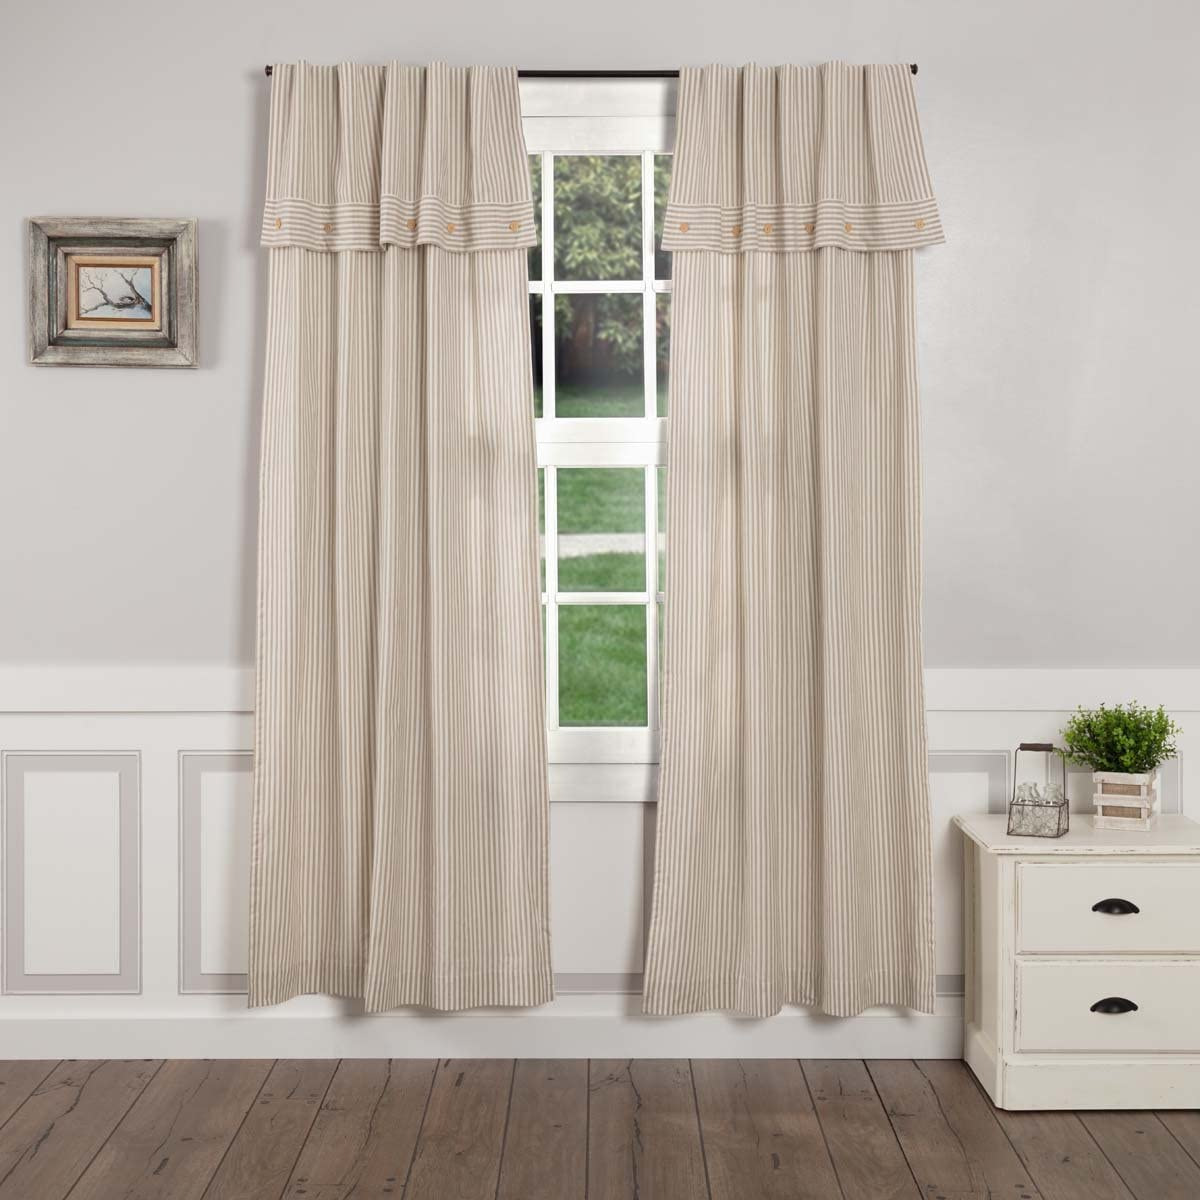 Piper Classics Farmhouse Ticking Stripe Taupe Panel Curtains, Set of 2, 96 Long, Attached Valance w Button Accents, Long Drapes